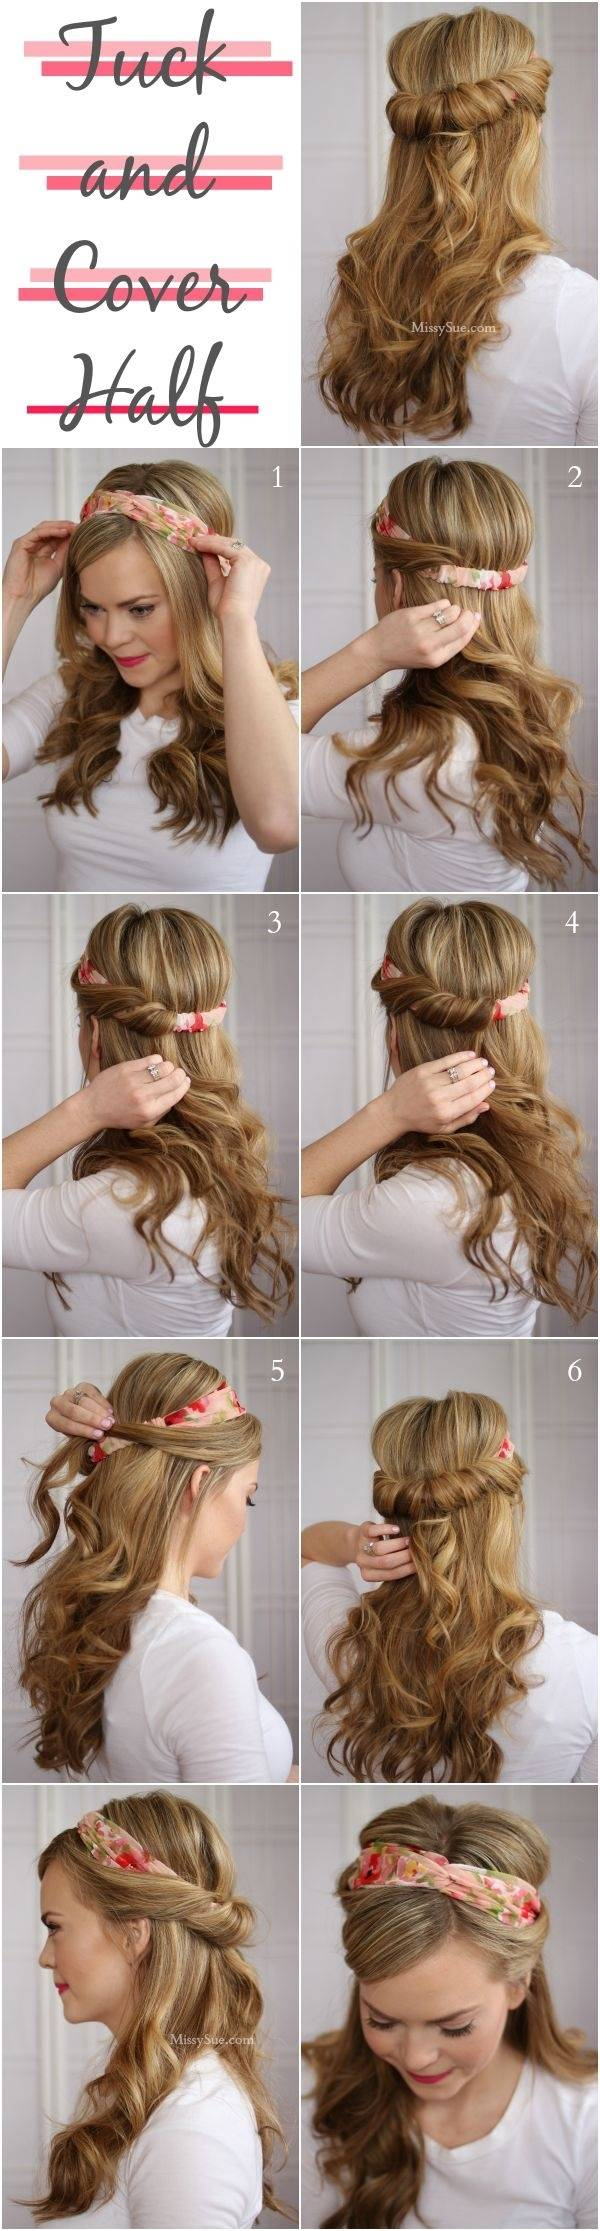 Quick Cute Hairstyle Hacks For When You Donut Feel Like Putting